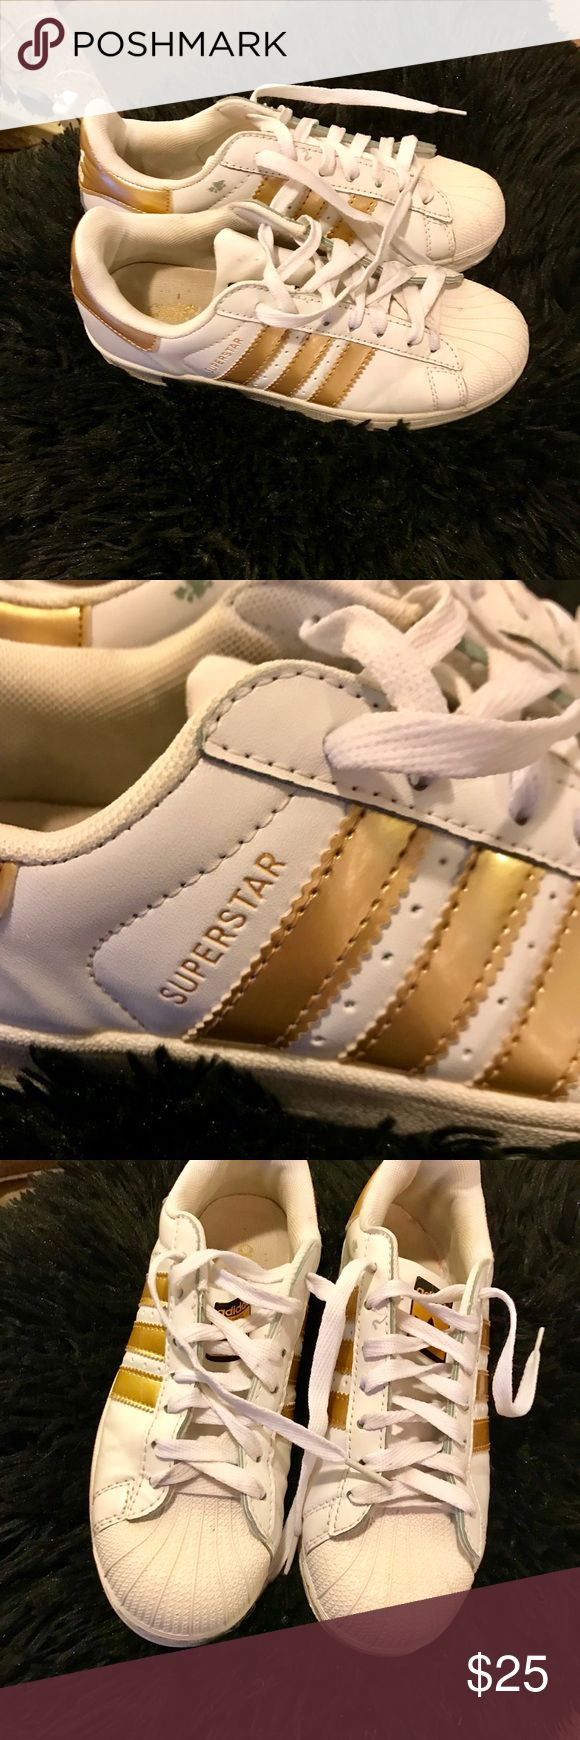 ADIDAS super star sneakers ADIDAS super star sneakers size 5 price lowered for a little yellowing on the toes AUTH adidas Shoes Sneakers